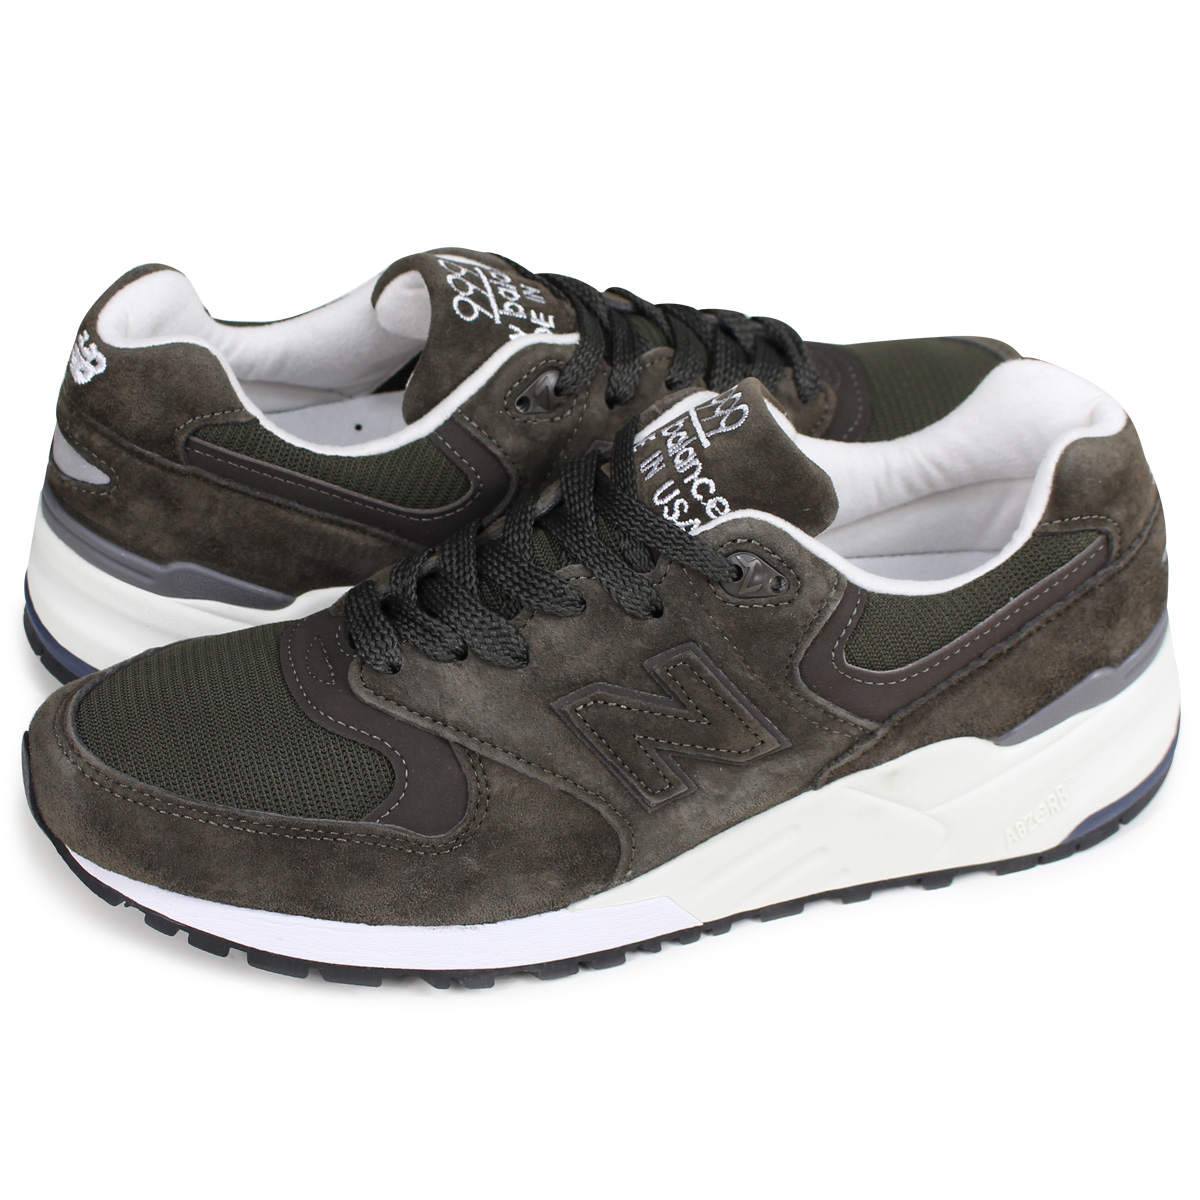 new style 75638 26809 new balance M999NJ New Balance 999 men's sneakers D Wise MADE IN USA dark  green